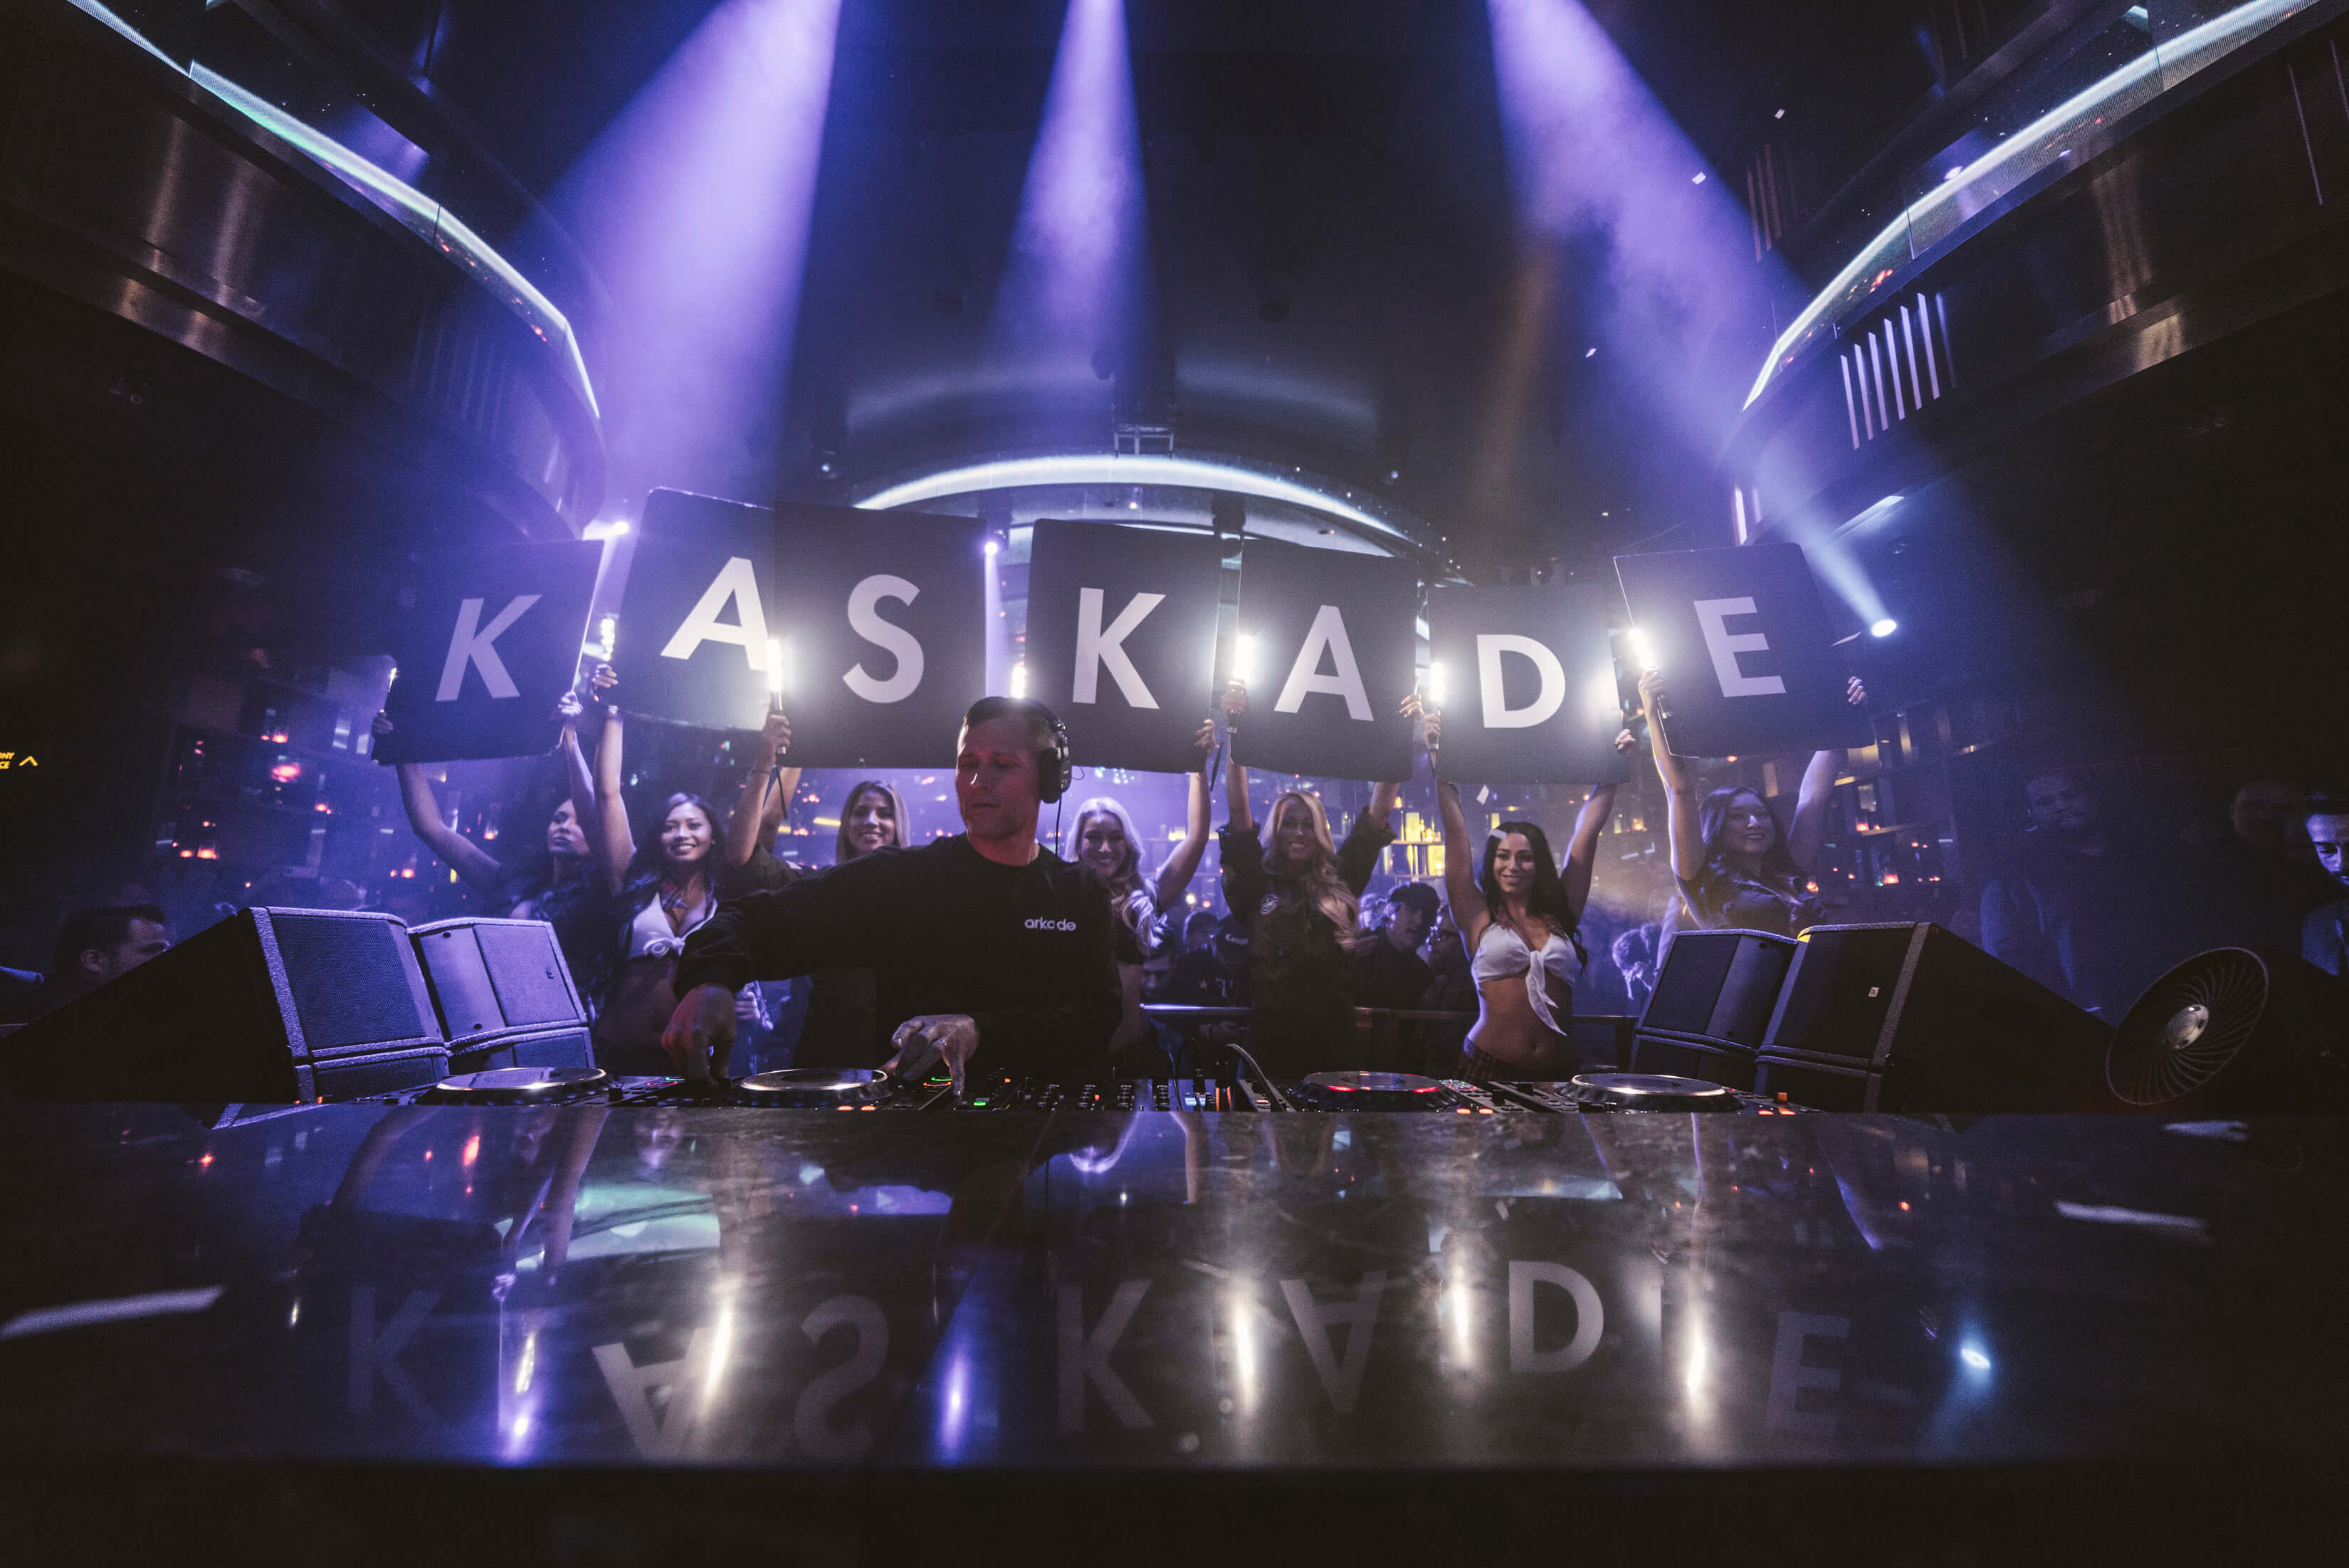 Kaskade Discusses Depression & Healing In New Journal Post